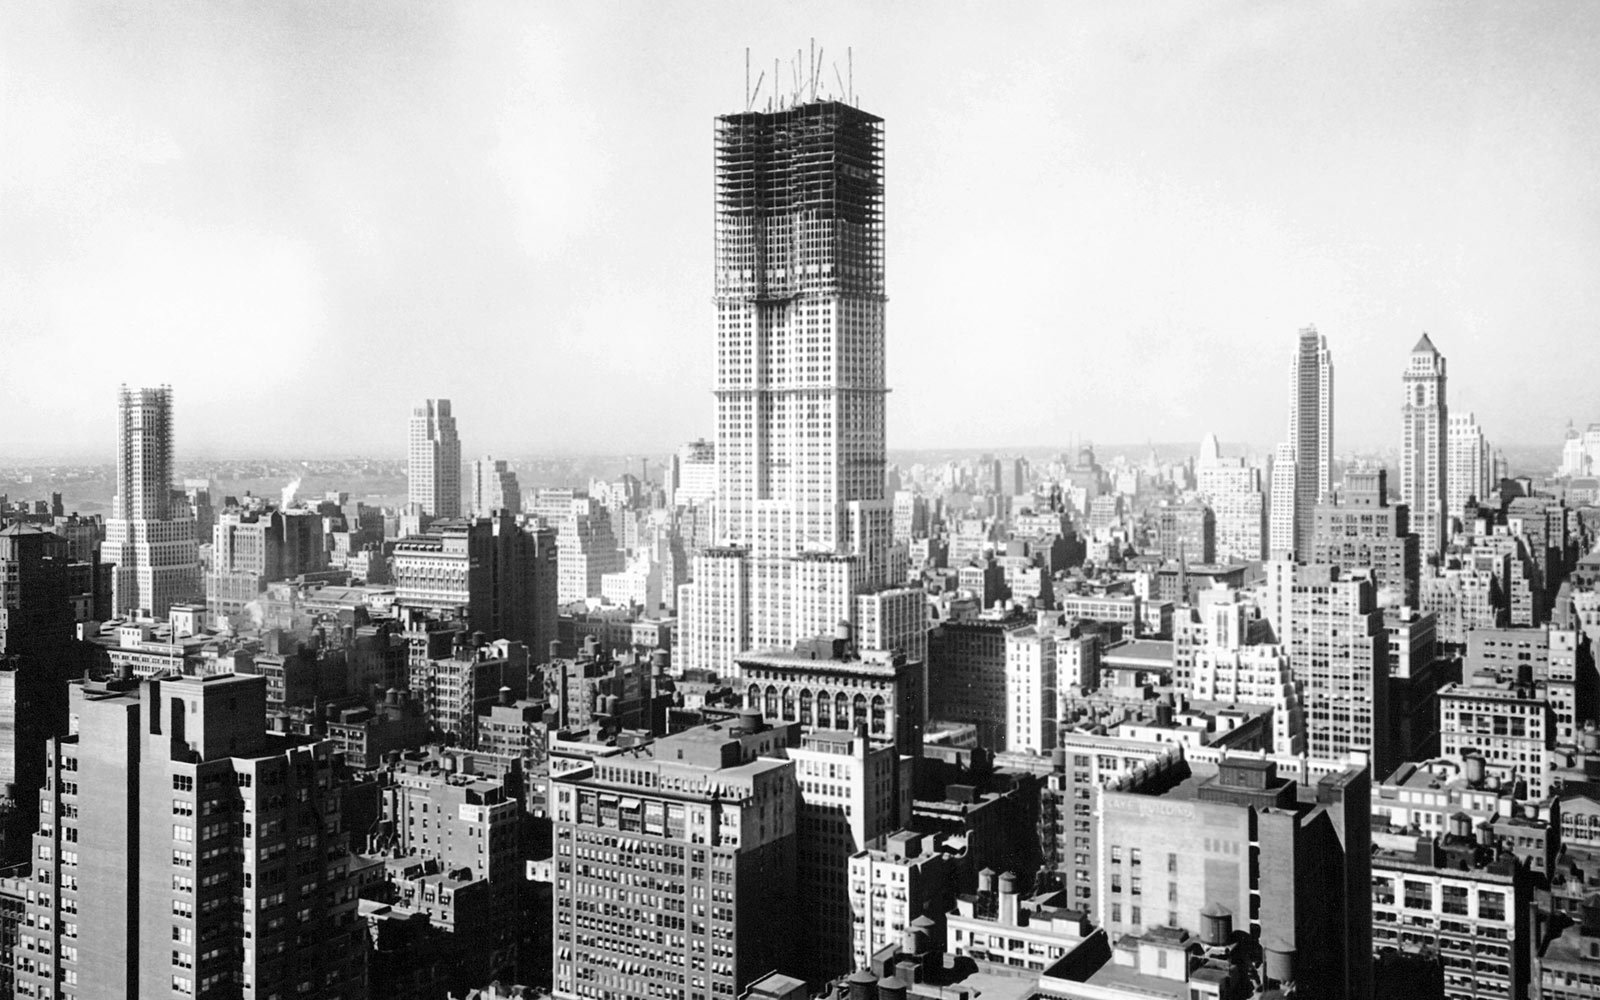 Empire State Building under construction, New York City